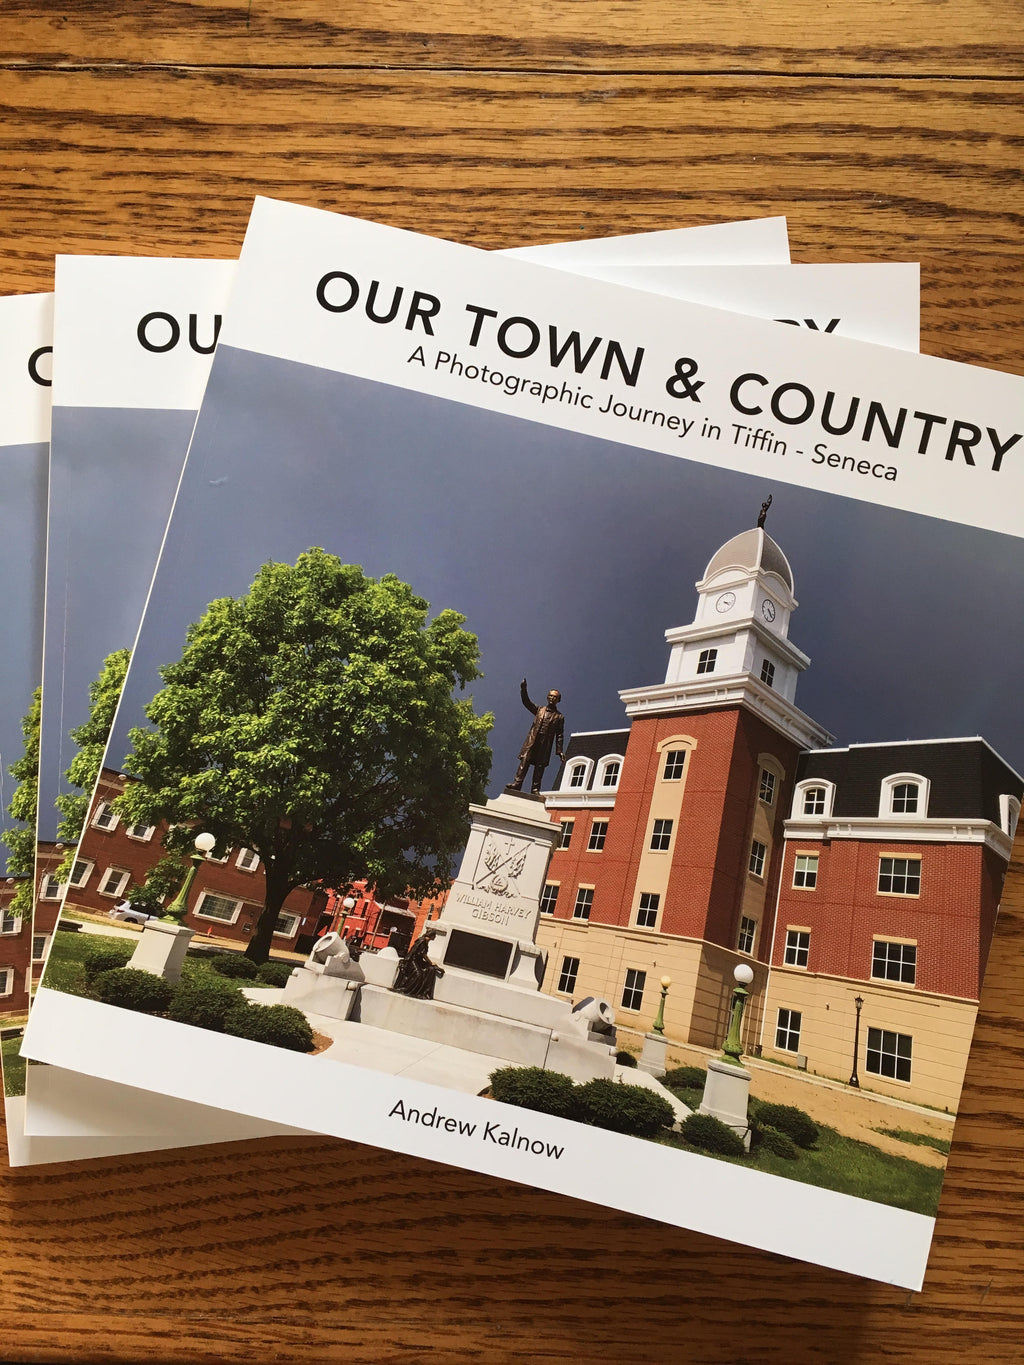 Our Town & Country, Volume 1 - Simply Susan's